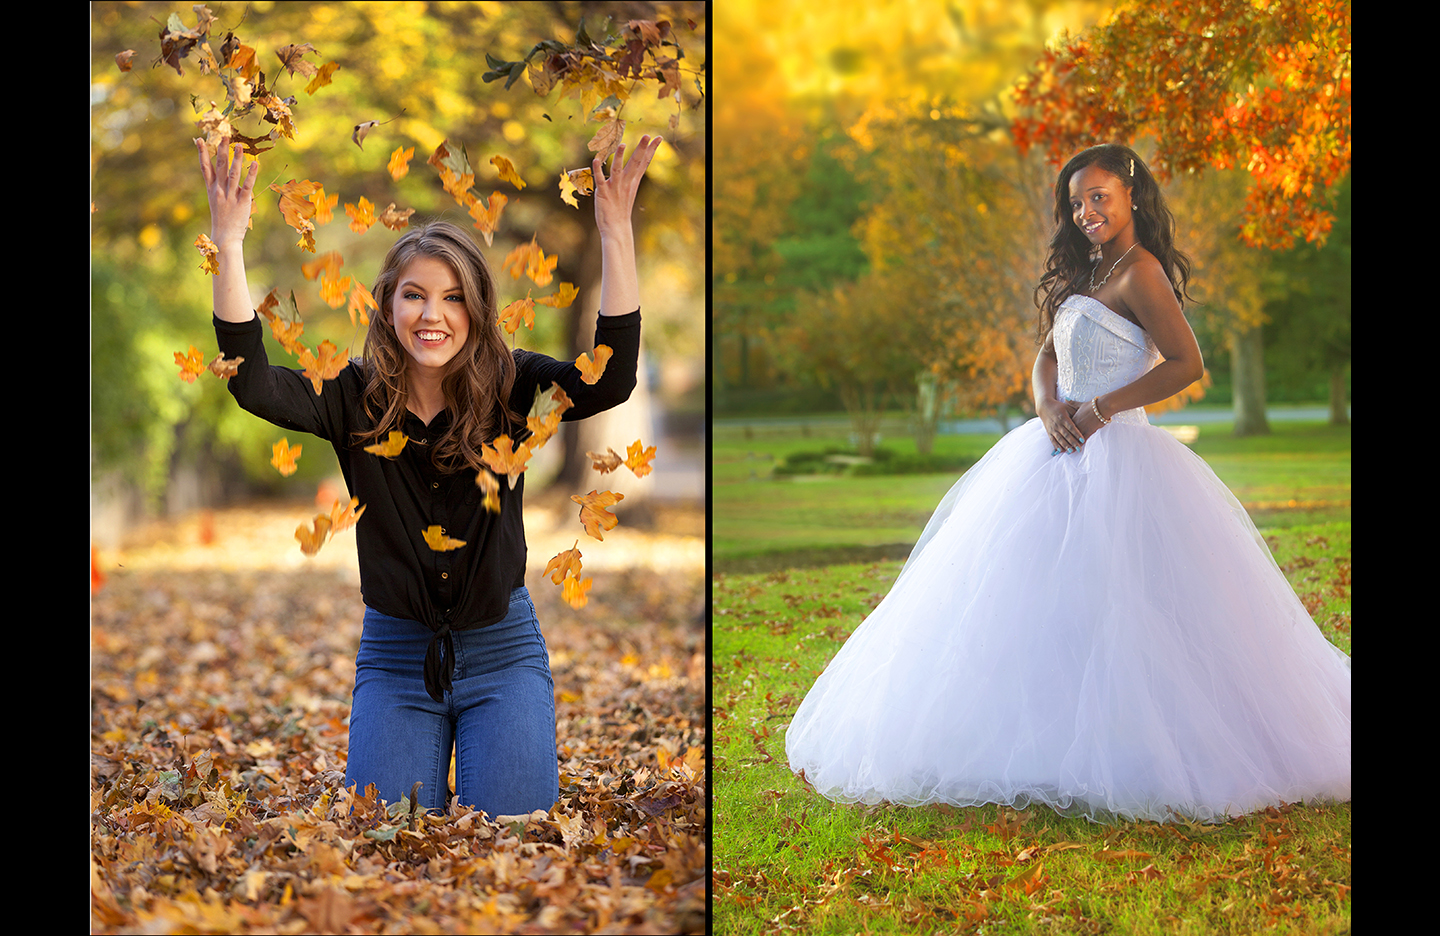 Tulsa senior portrait fall pictures.jpg